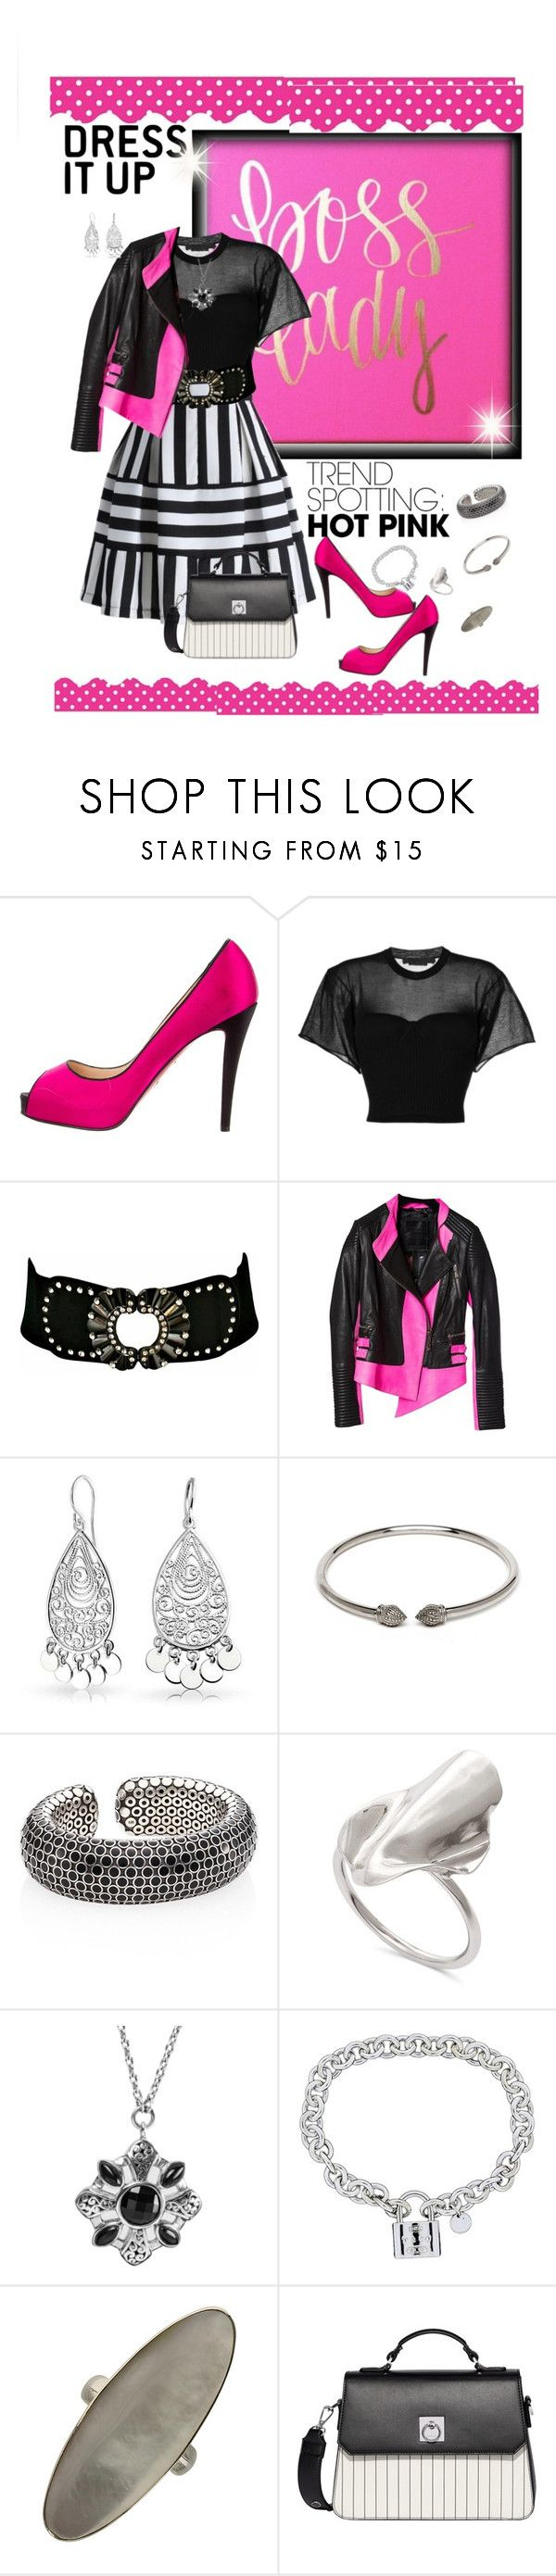 """A little edgy, a little soft"" by papillon825 ❤ liked on Polyvore featuring Christian Louboutin, Alexander Wang, Philipp Plein, Bling Jewelry, John Hardy, Lois Hill, Tiffany & Co., Fiorelli and pleatedskirt"